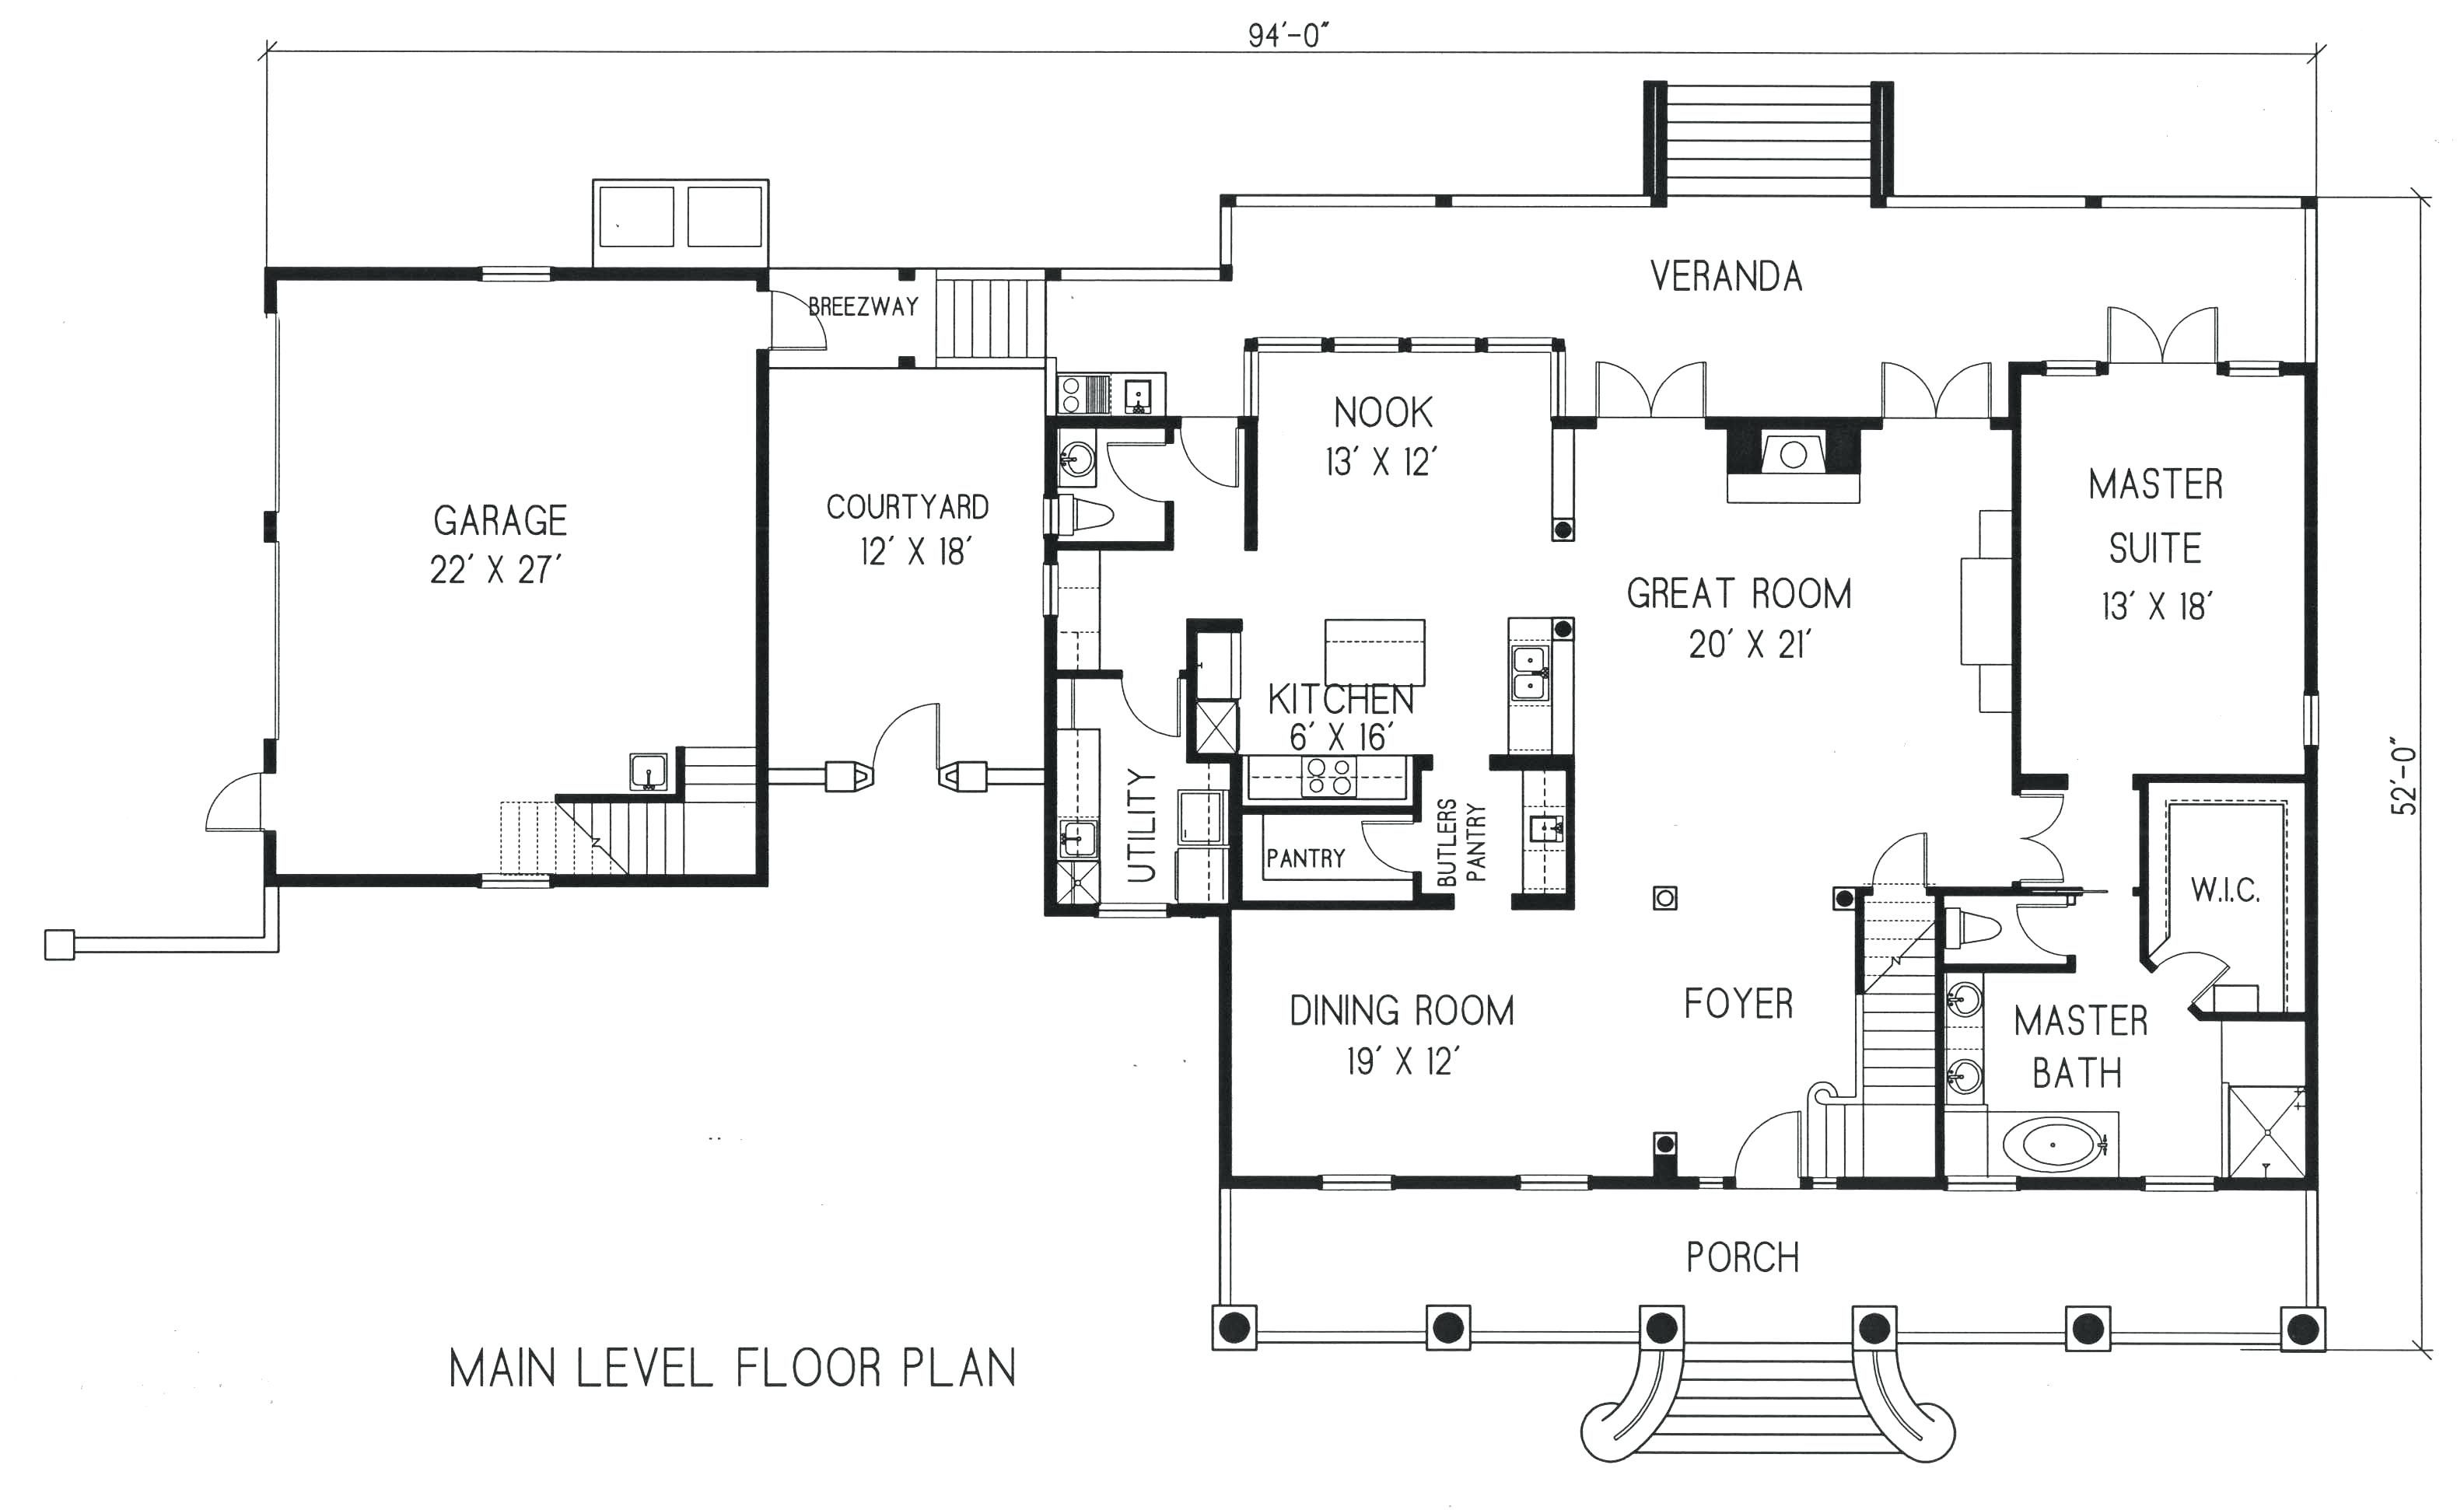 Detached Garage Floor Plans With Loft